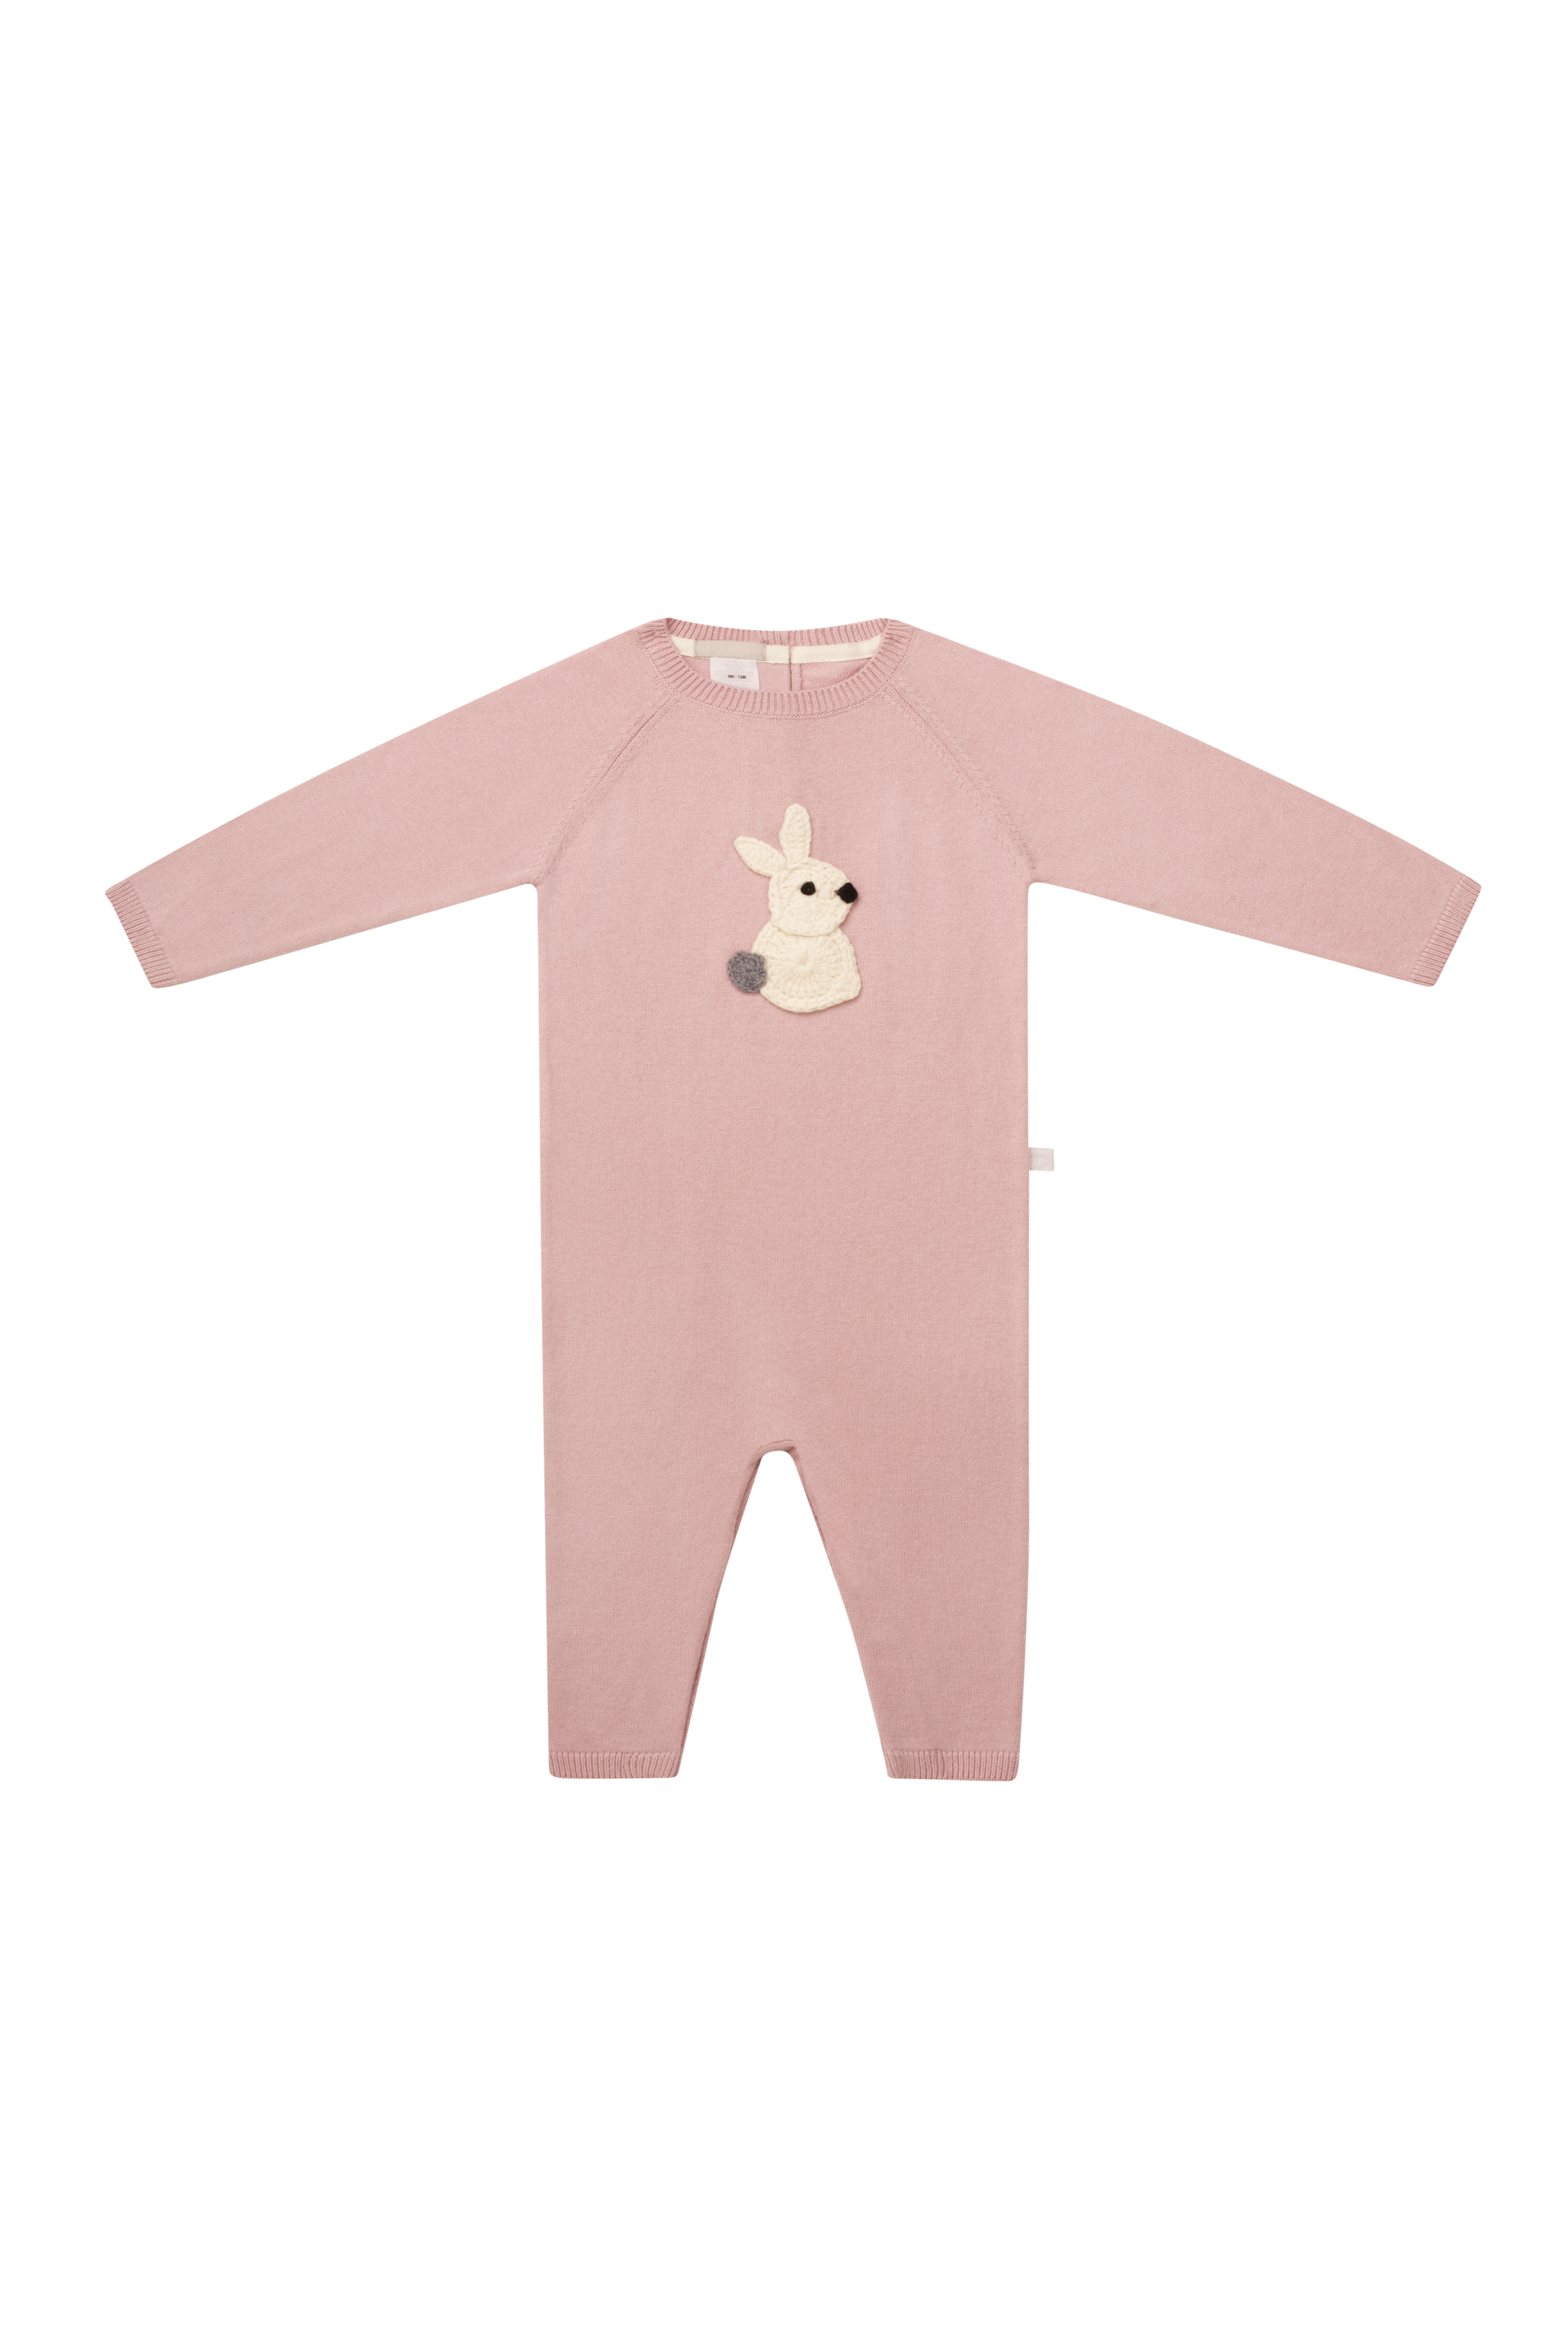 Hunny Bunny Pink Romper by Arc de Noa on curated-crowd.com